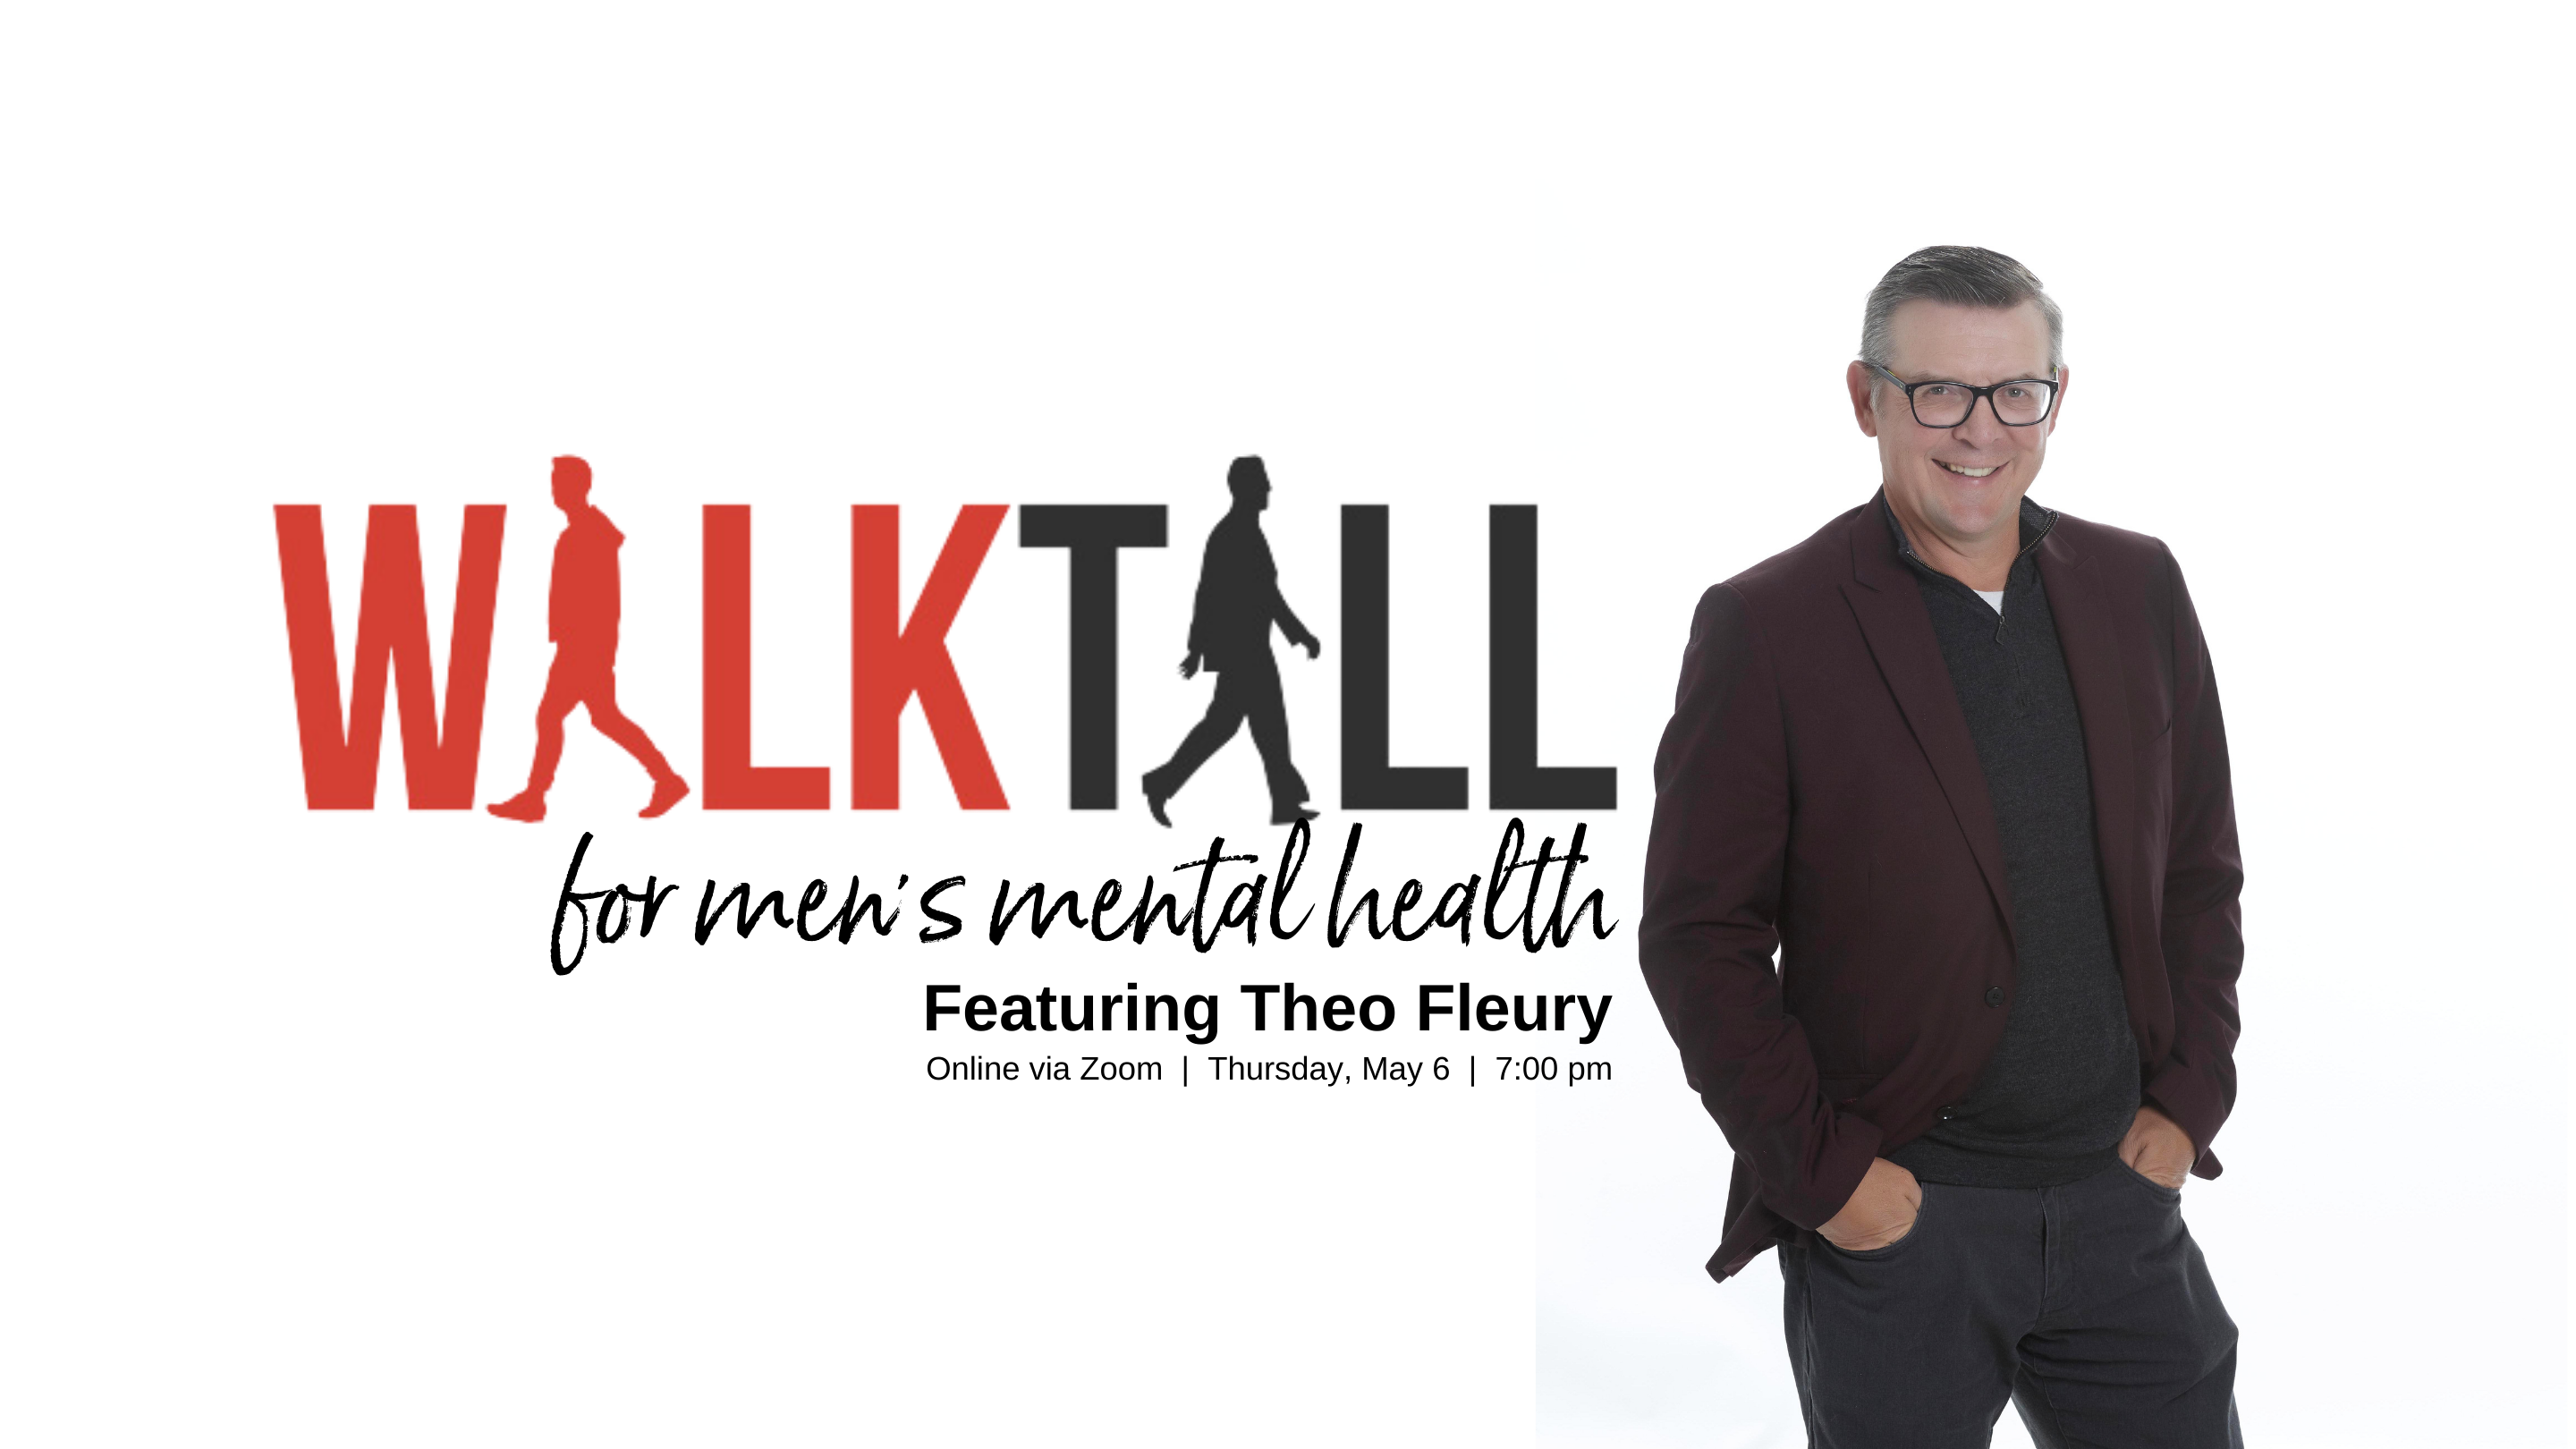 Walk Tall for Men's Mental Health, Featuring Theo Fleury (online)